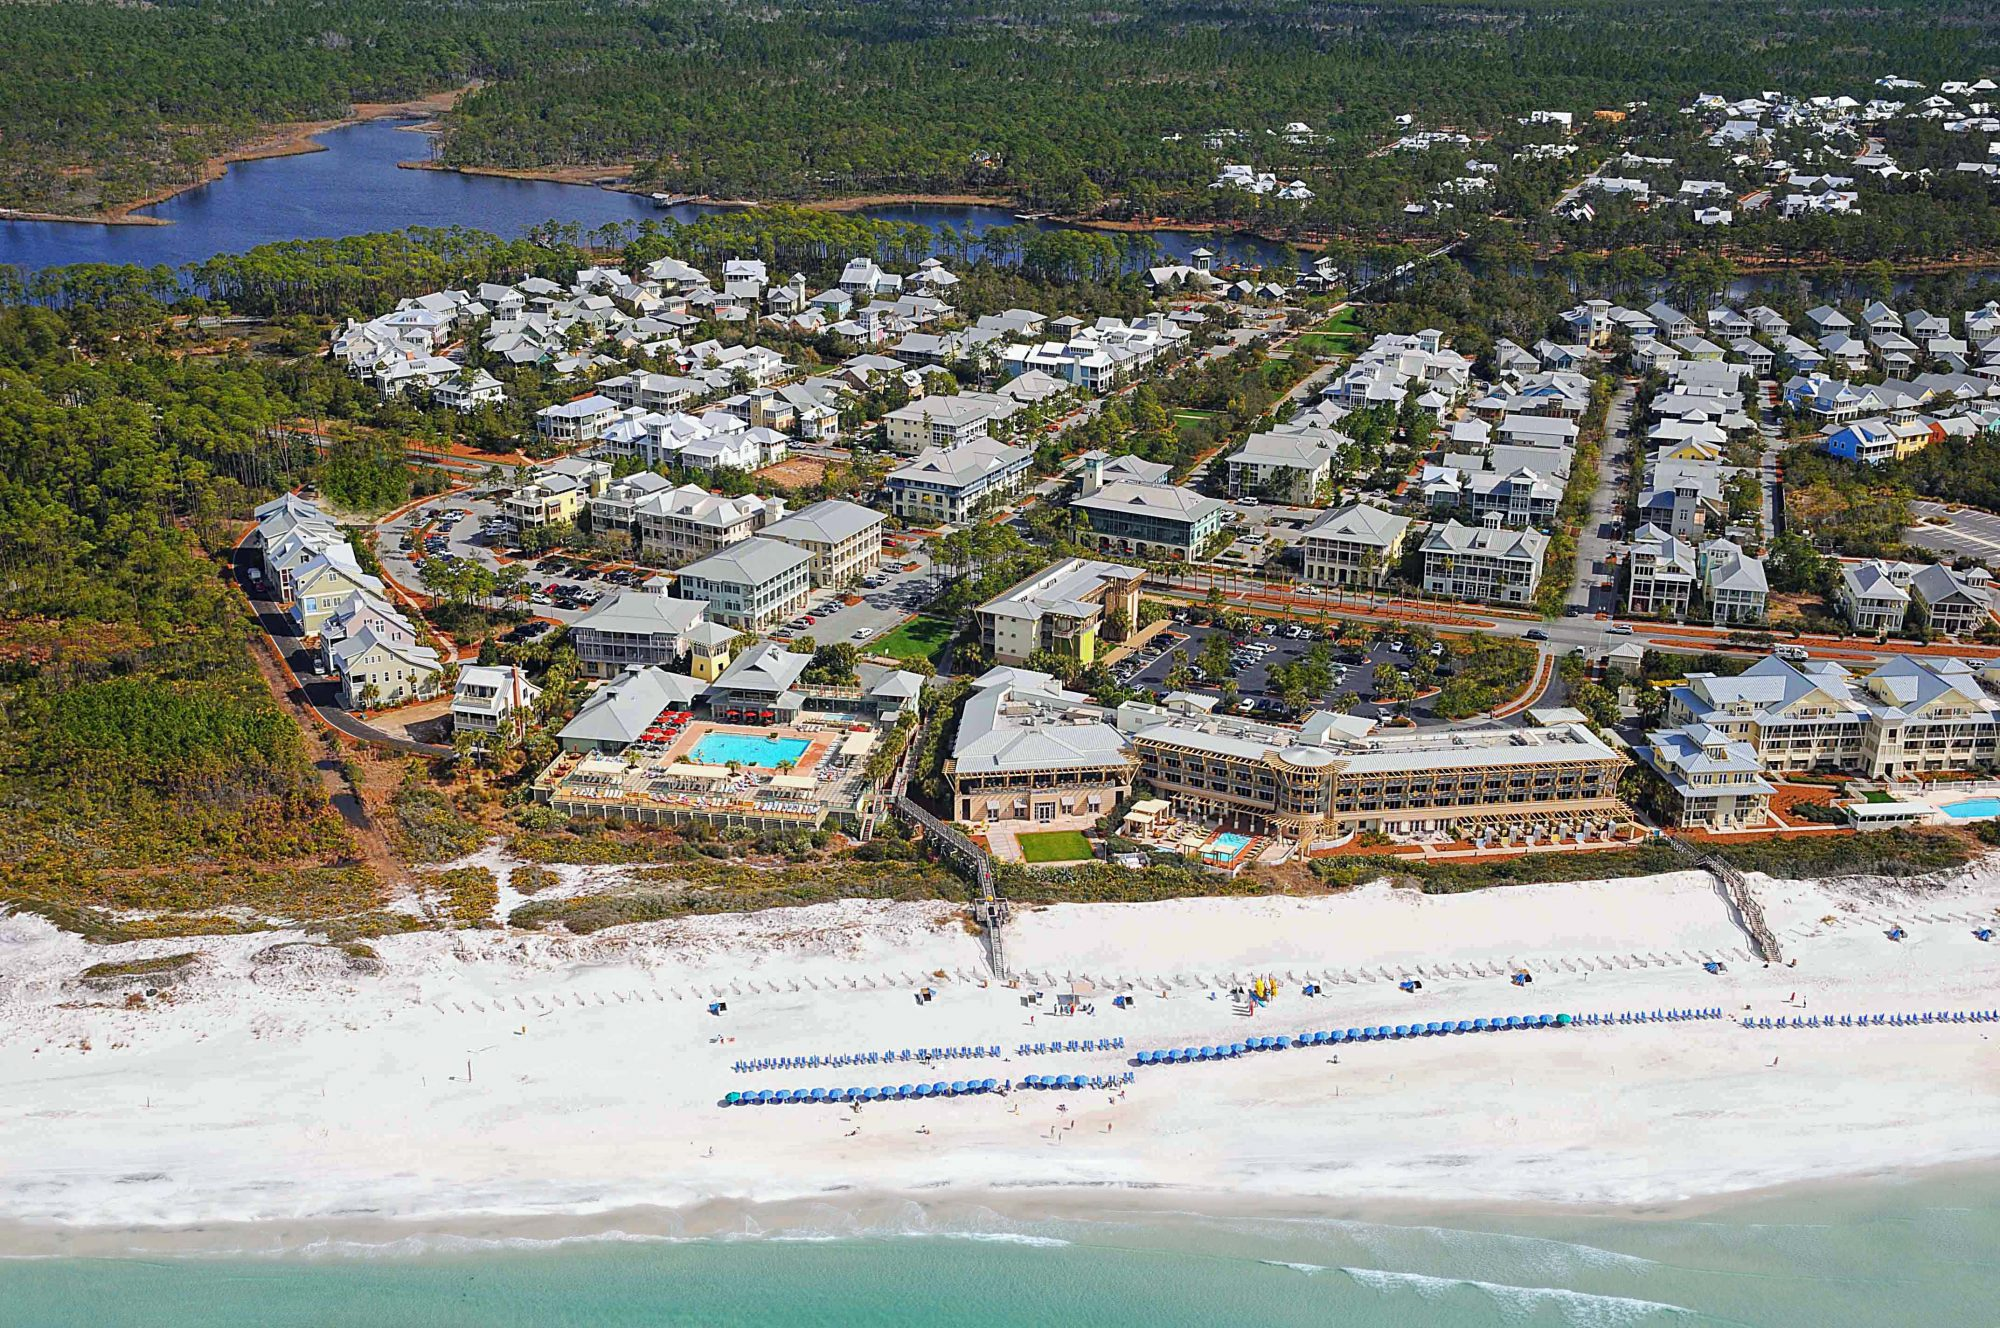 One of the newer communities along Florida's idyllic 30A, WaterColor is anchored by an inn and resort of the same name, with a prime waterfront spot on the Gulf and a slew of activities to entertain beach-goers of all ages. Tucked between Seaside and Gray